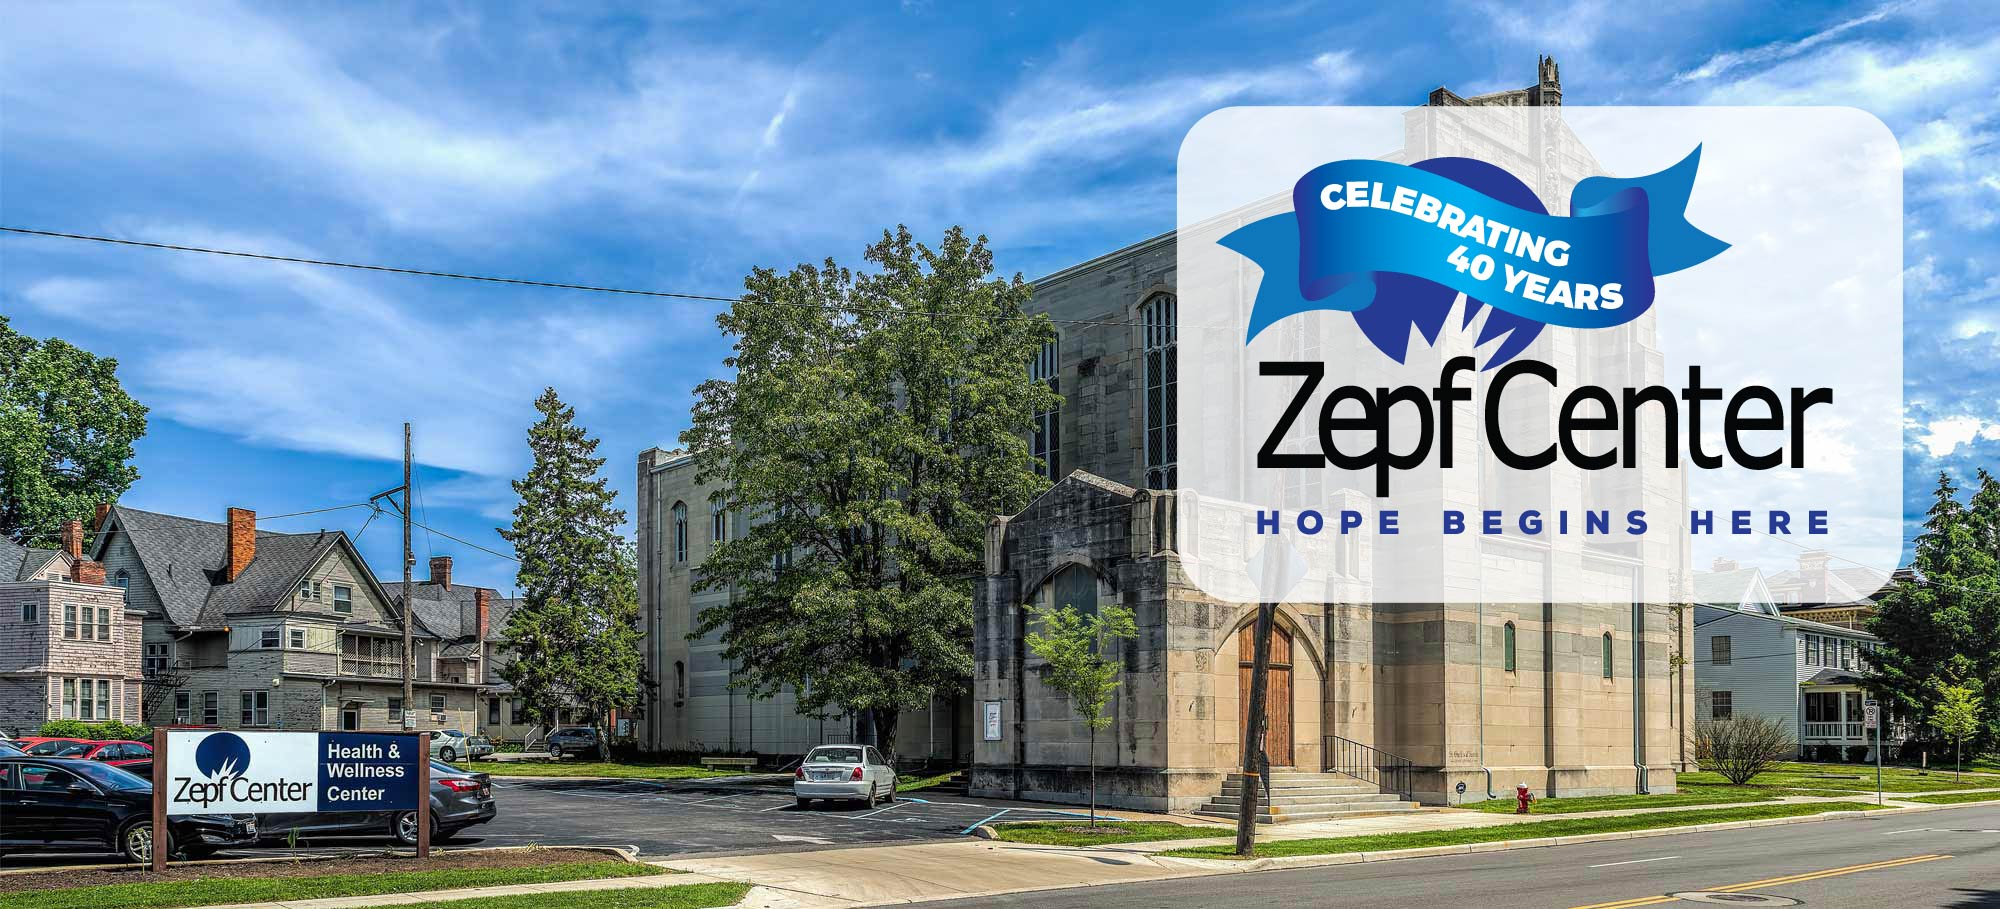 Zepf Center - Health & Wellness Center